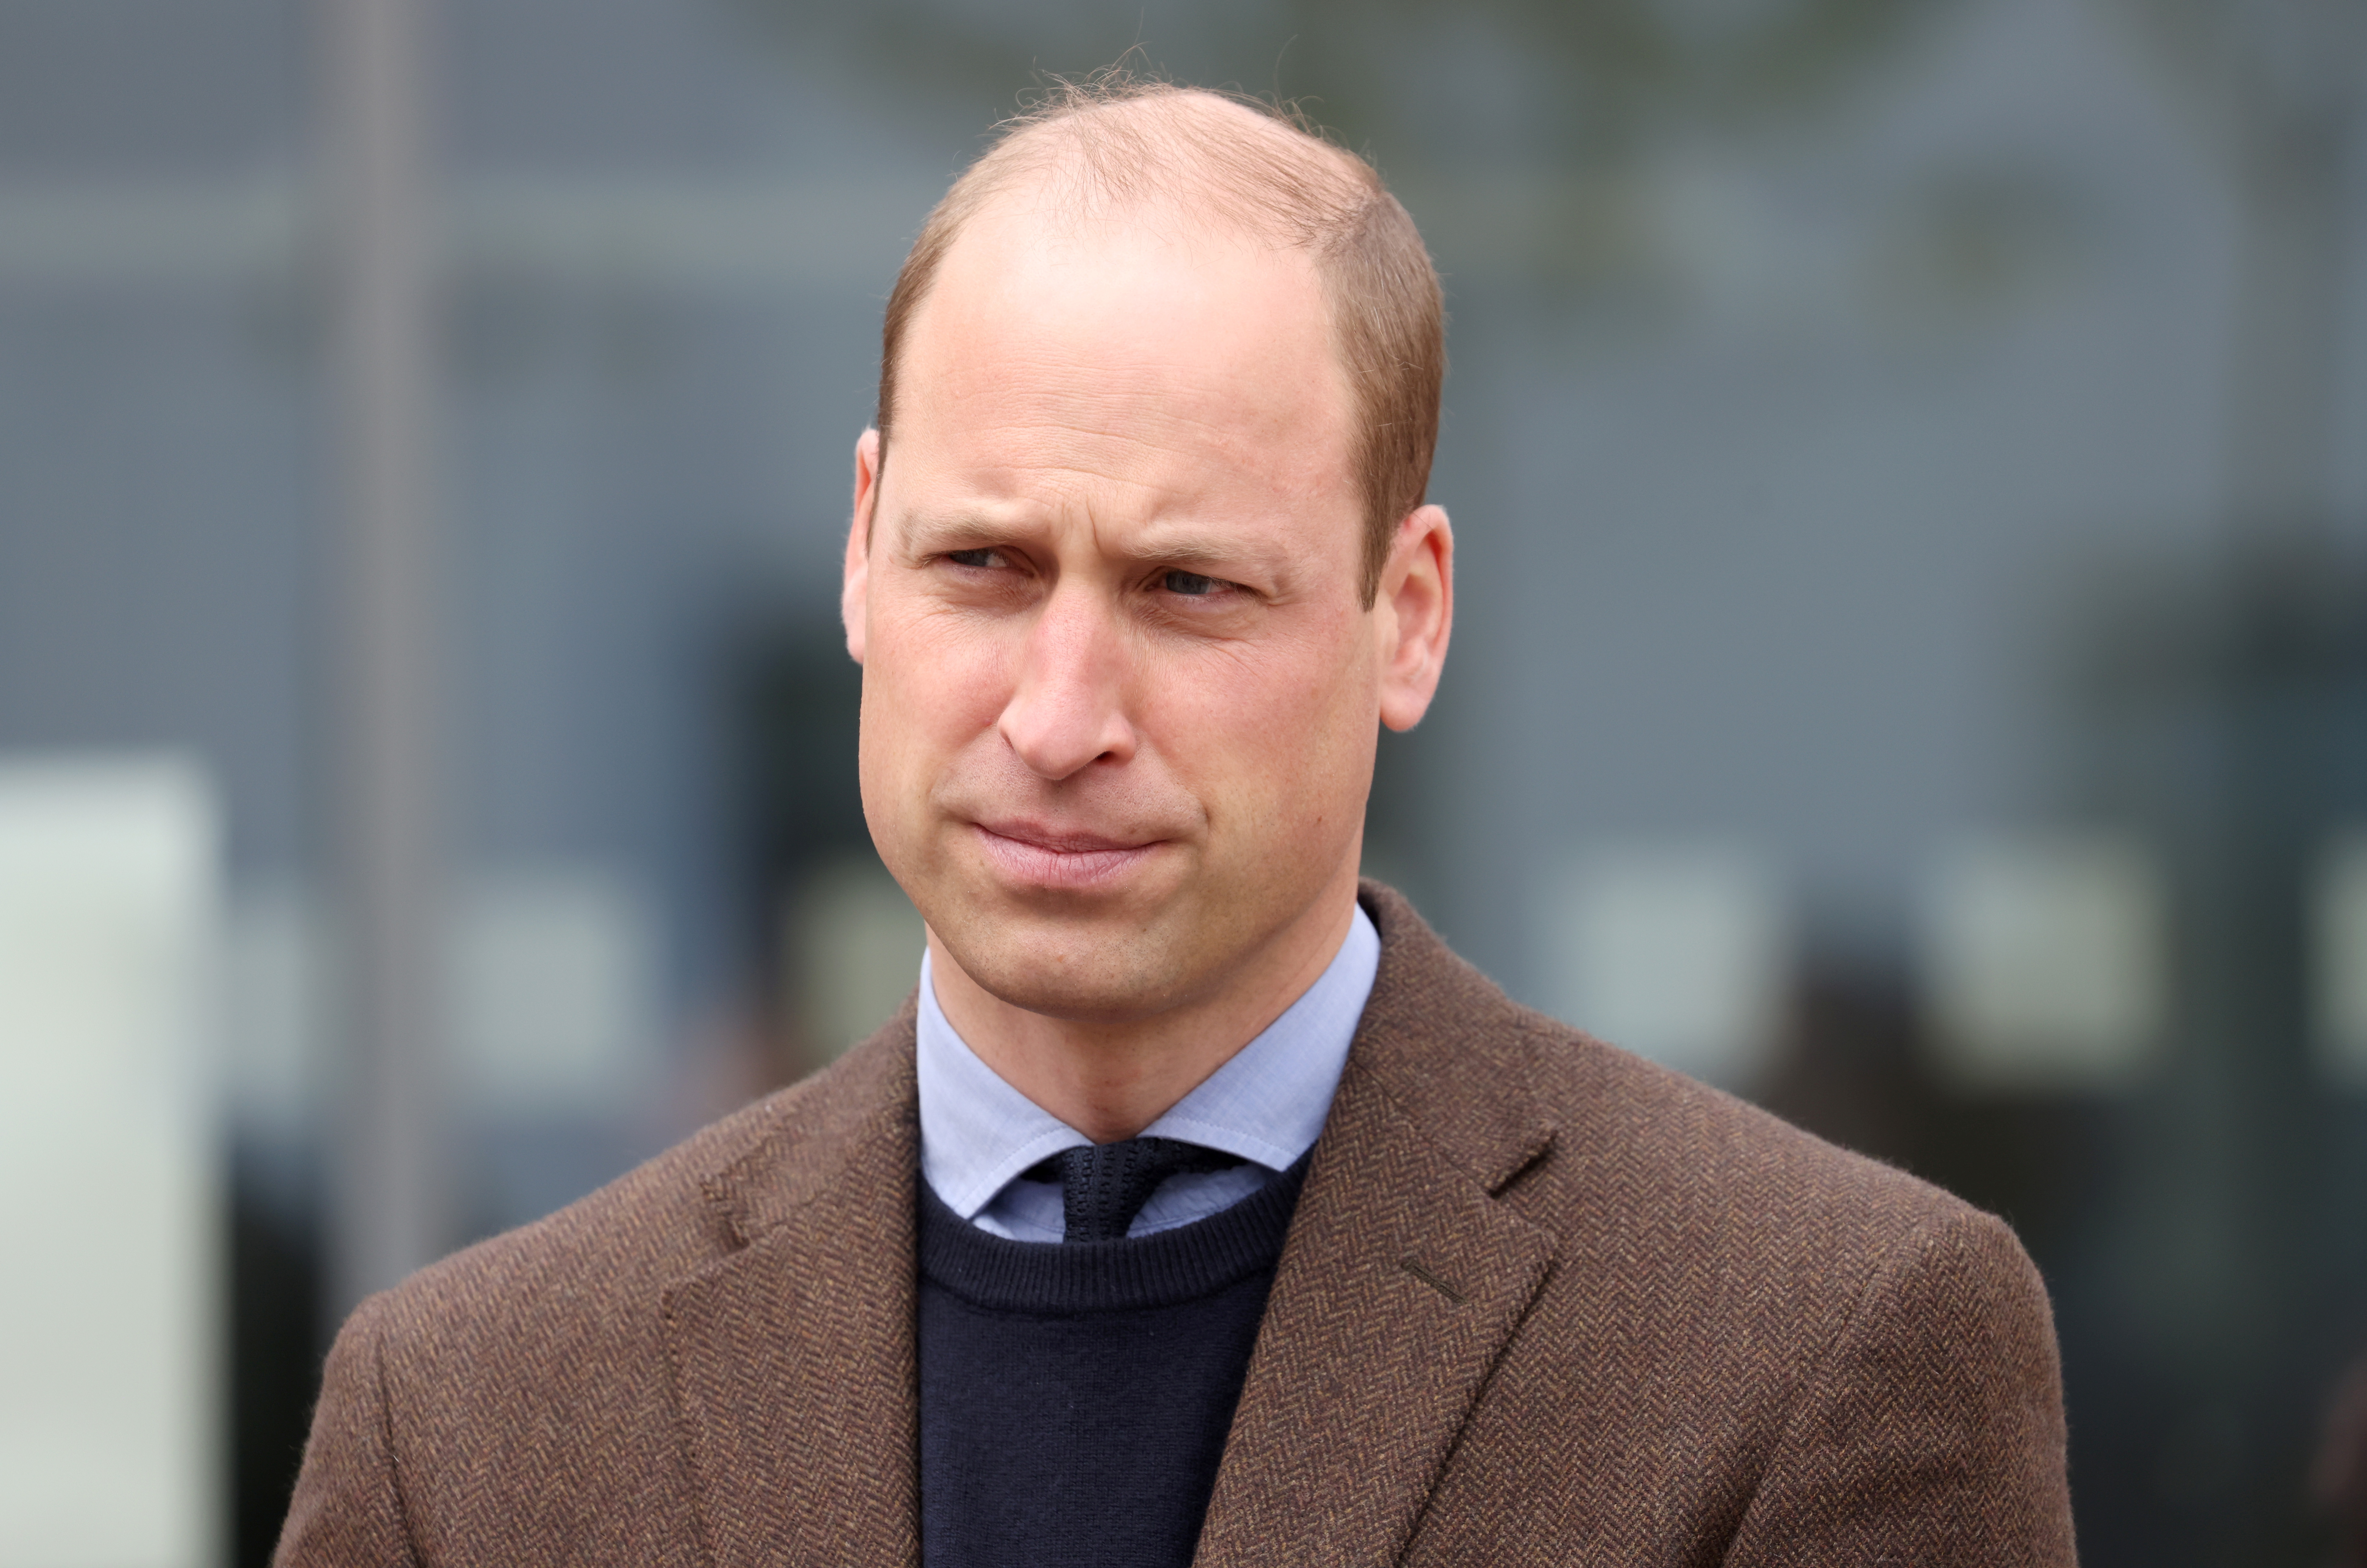 Britain's Prince William, Duke of Cambridge visits to officially open The Balfour, Orkney Hospital in Kirkwall, Scotland, Britain May 25, 2021. Chris Jackson/Pool via REUTERS